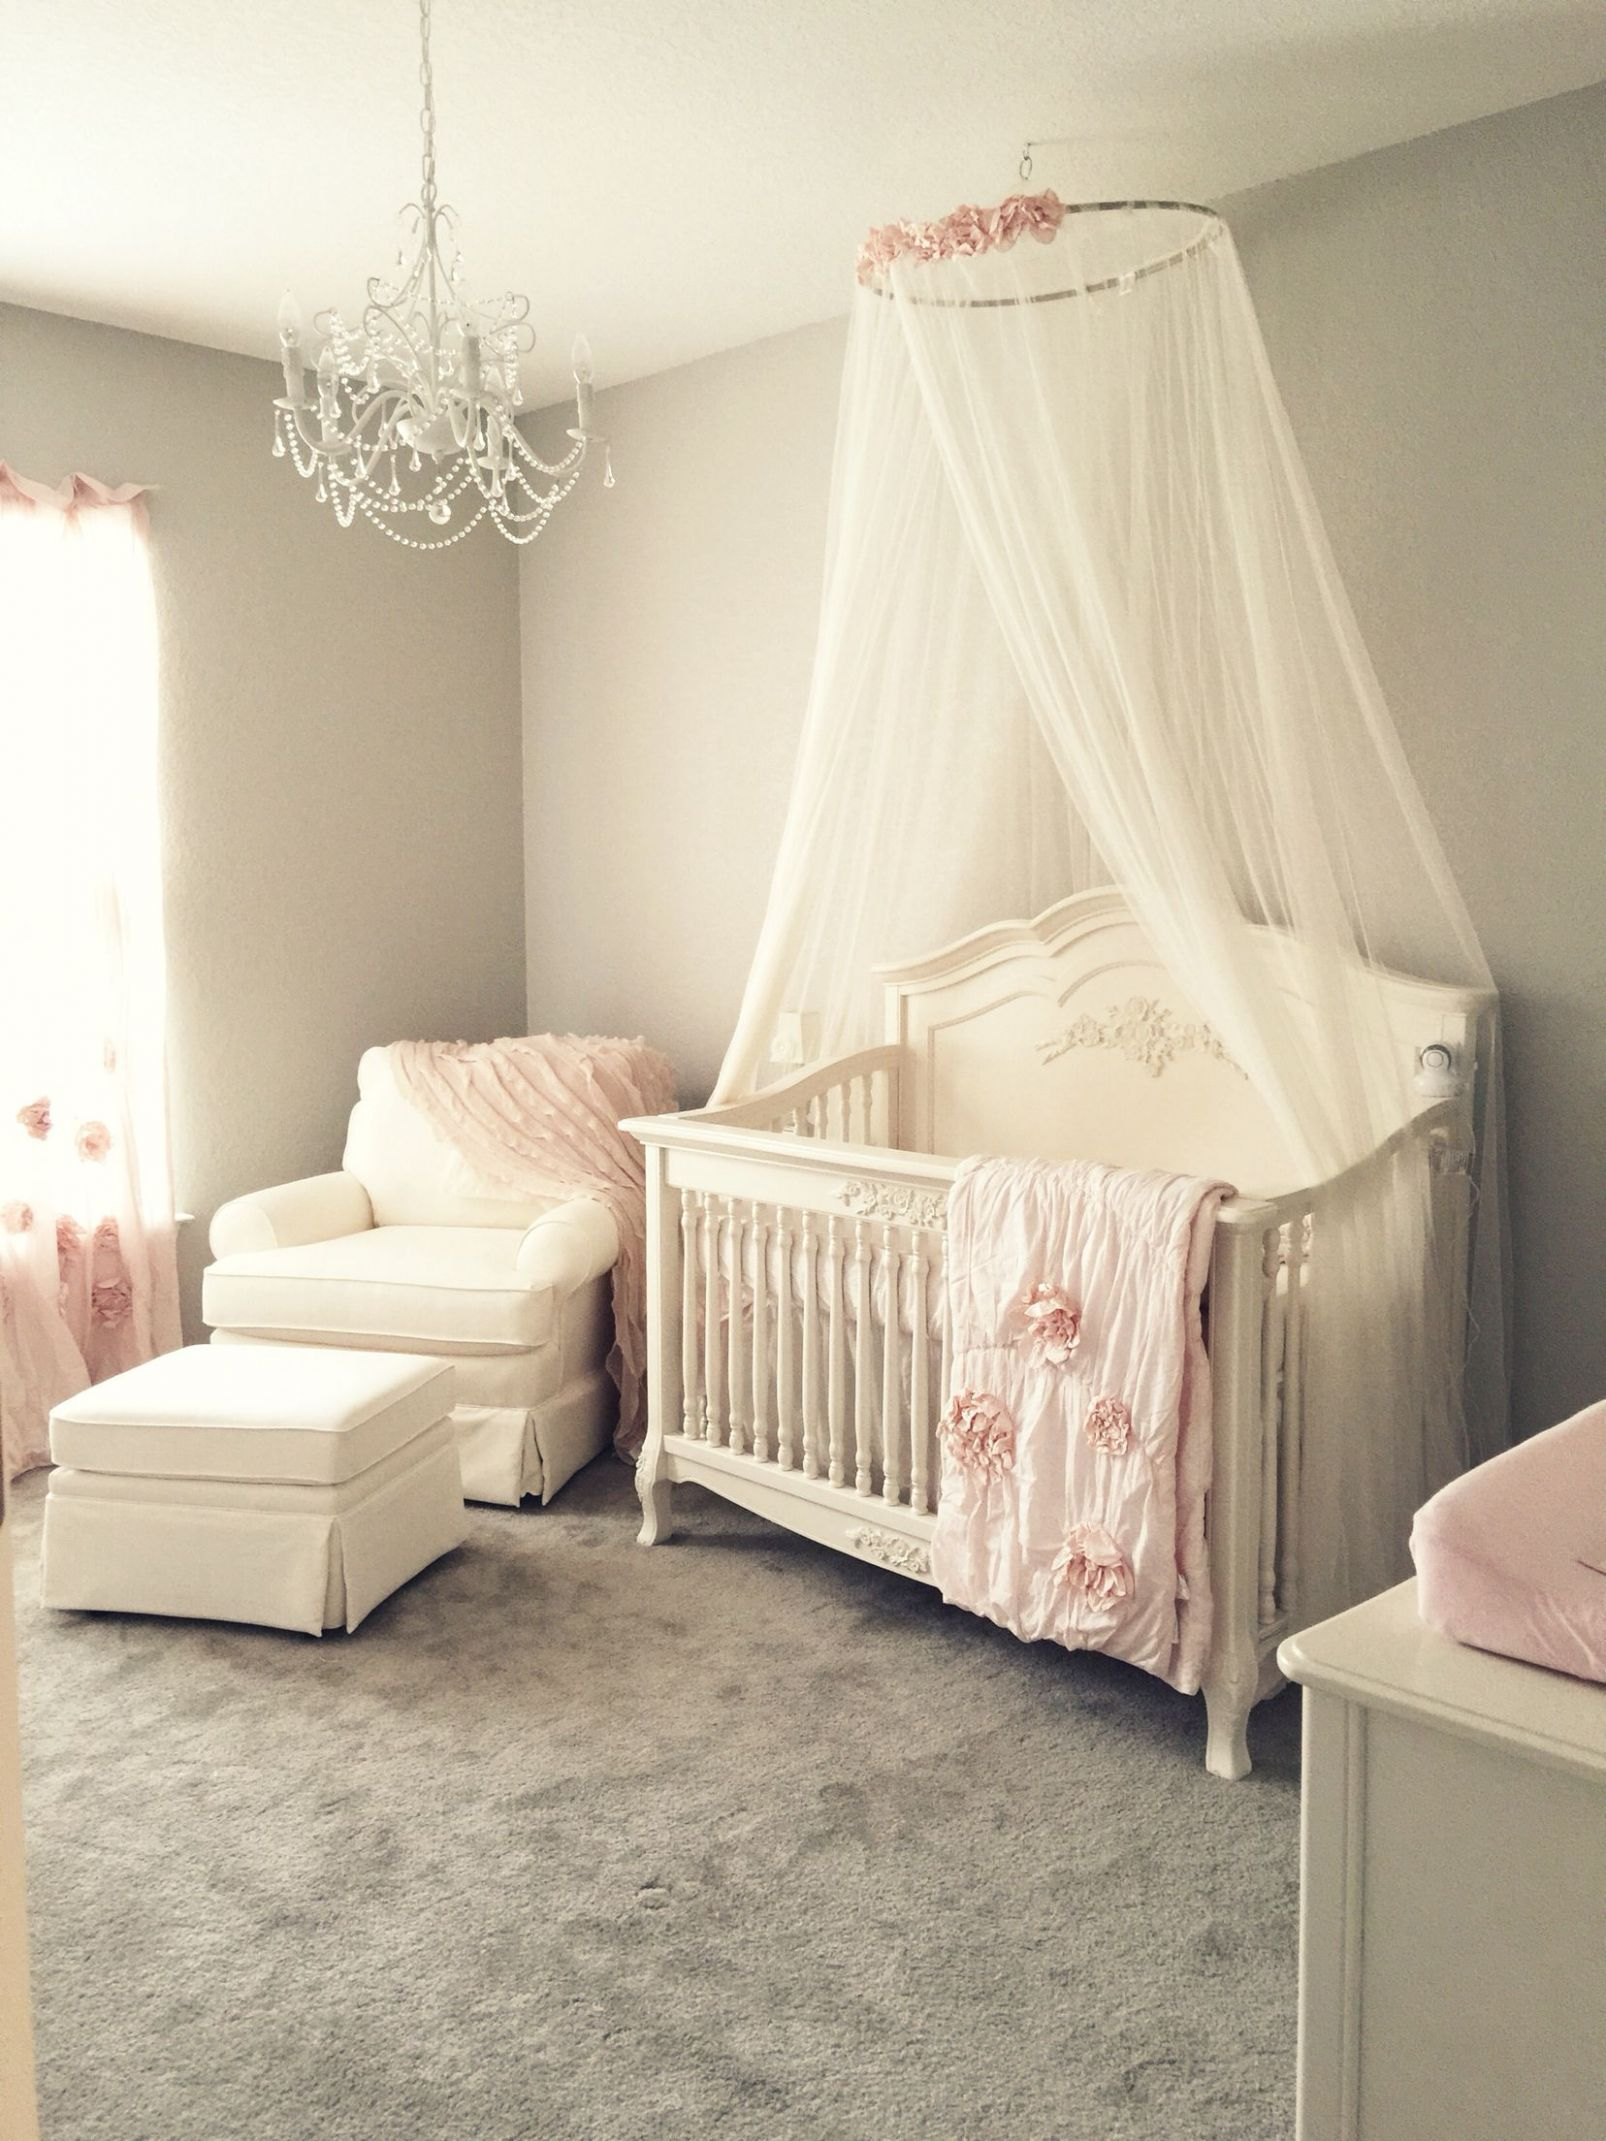 Girly pink blush nursery with chandelier, ivory rocker and glider ...